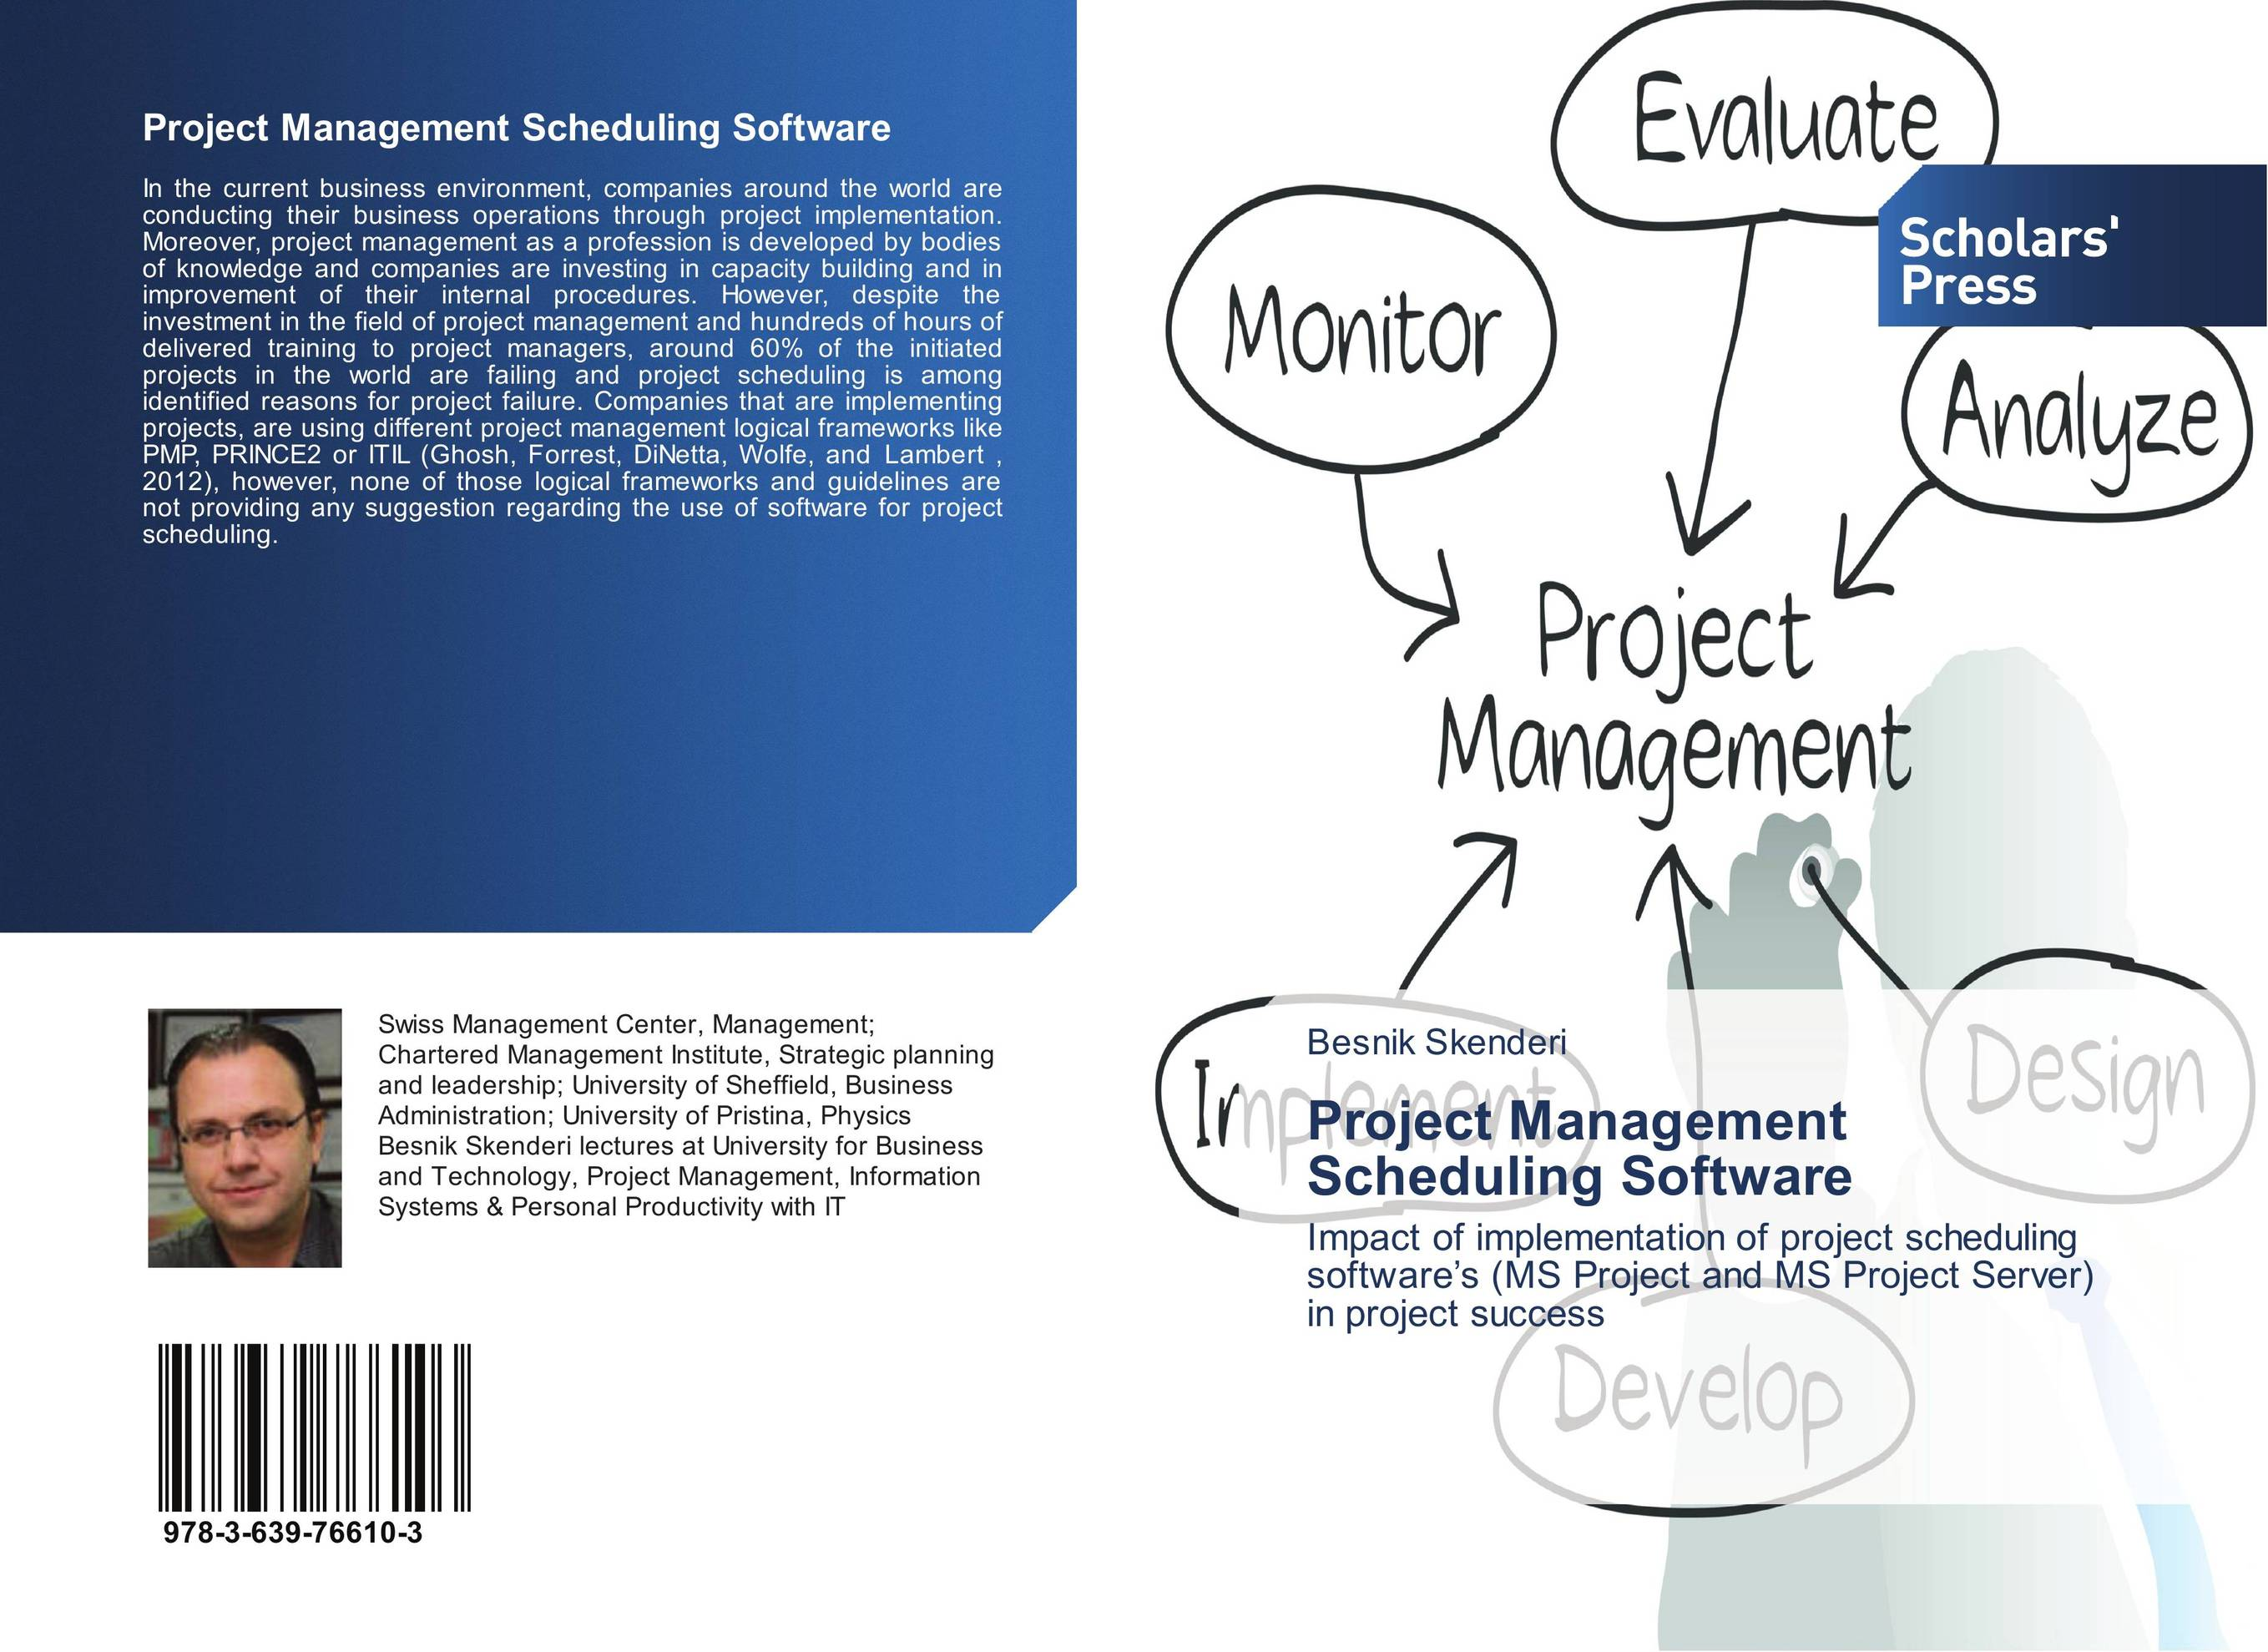 Project Management Scheduling Software lighthouse project lighthouse project we are the wildflowers